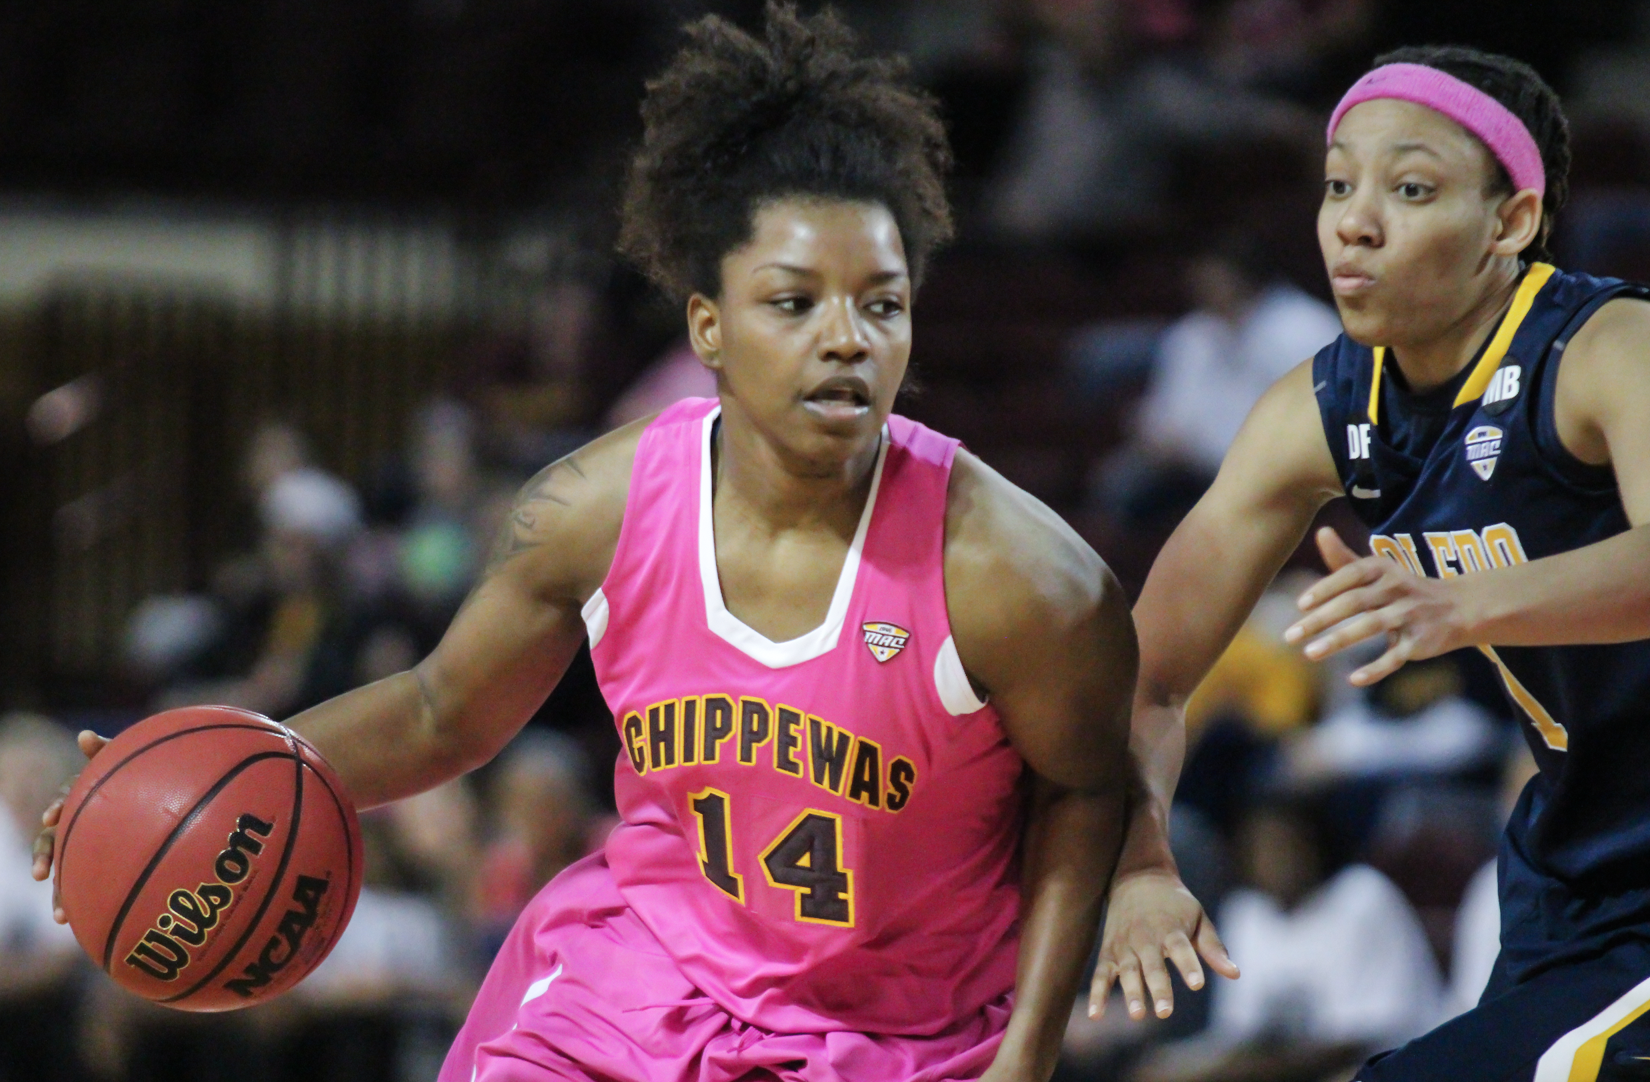 Guard Amani Corley (14) drives the lane in the loss against Toledo at McGurick Arena on Saturday, Feb. 20.